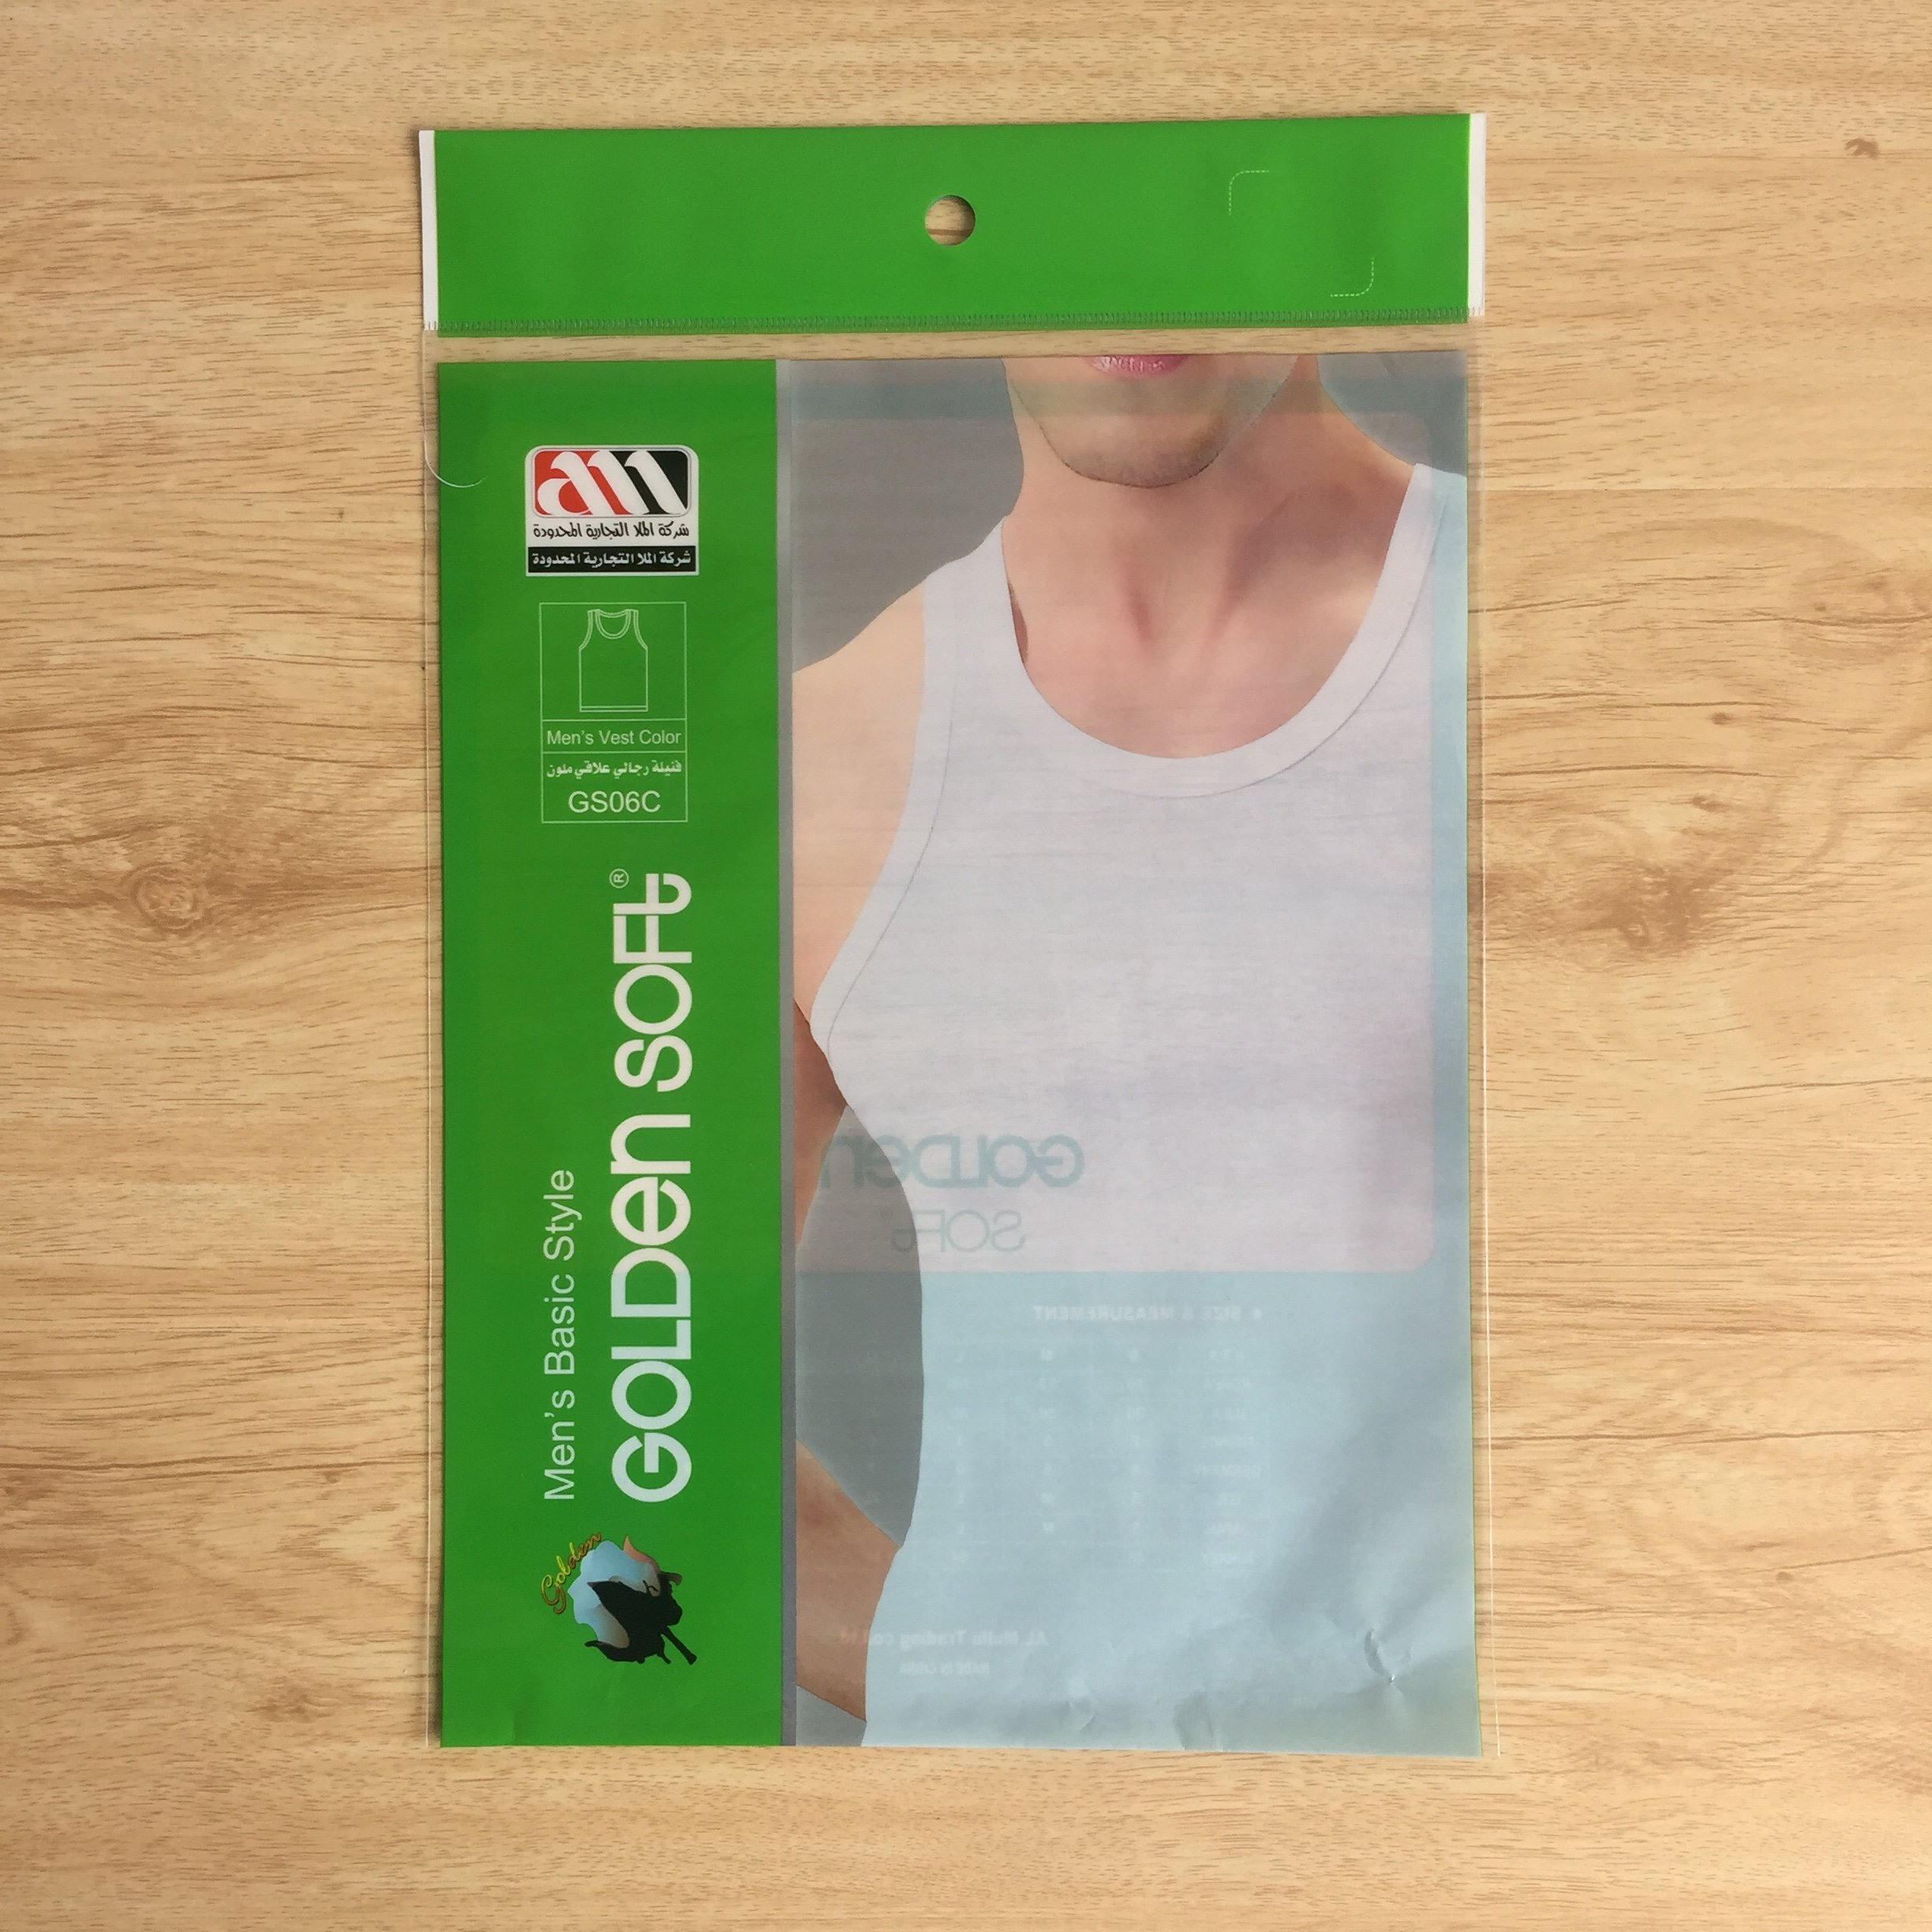 Customized Printed Underwear Laminated Bags W41